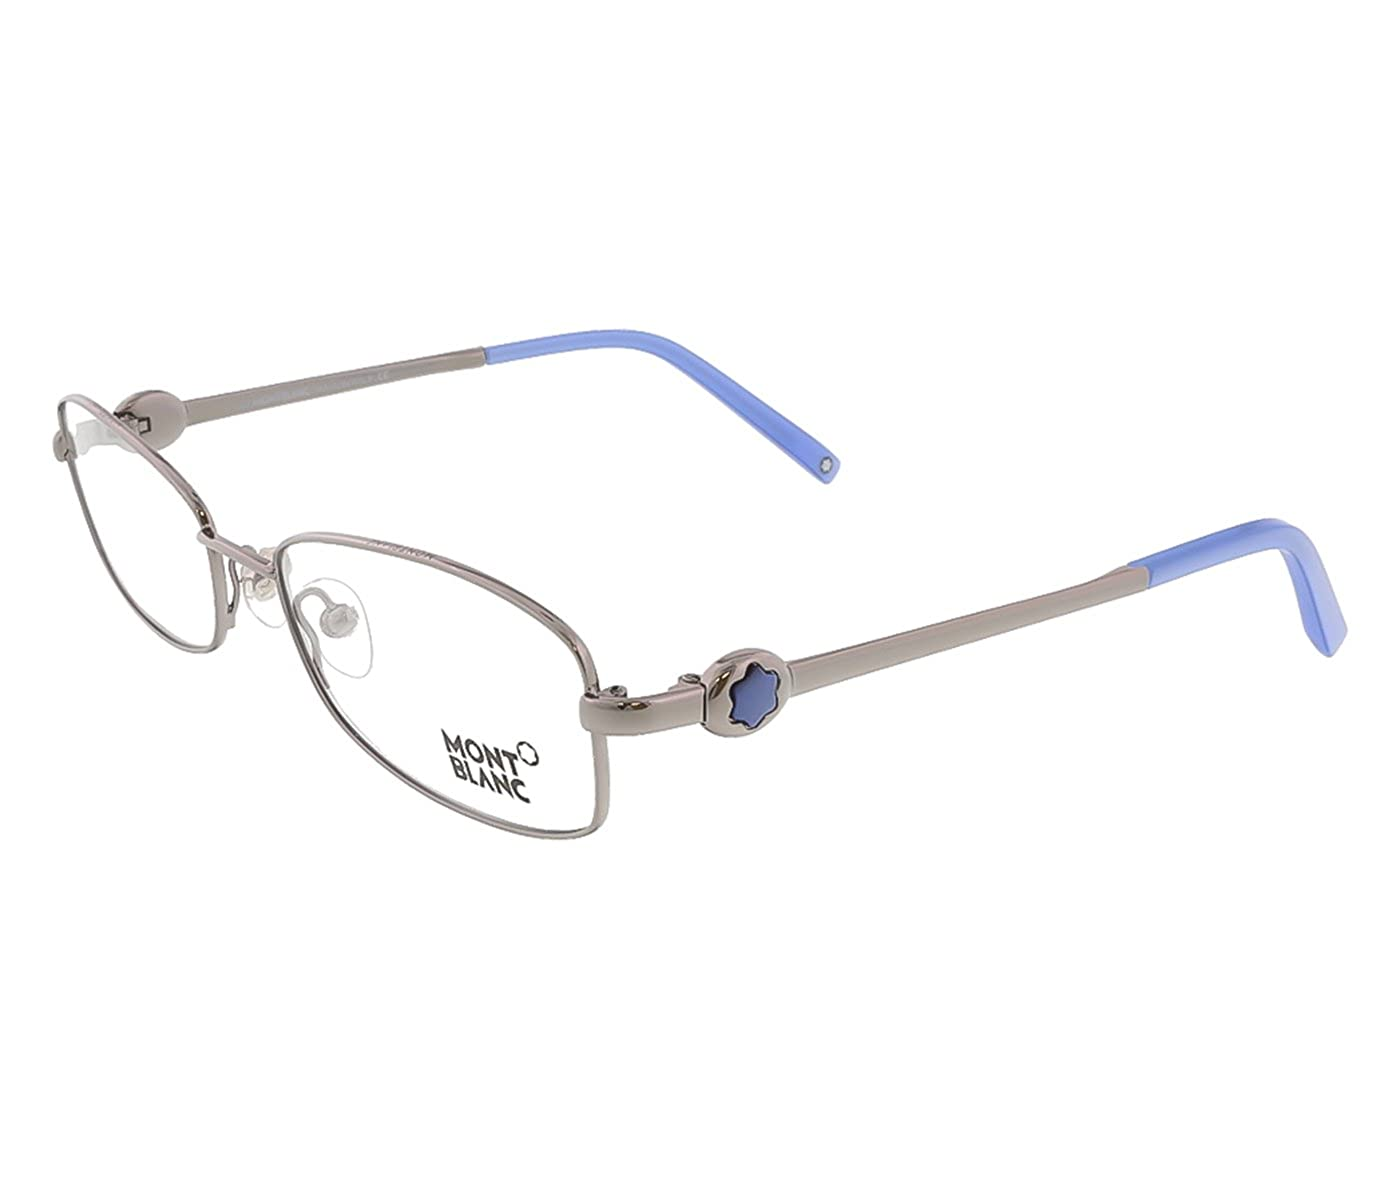 272a5384fe67 Mont Blanc eyeglasses frames Women s MB0395 014 Gunmetal silver Rectangular  53mm Eyeglasses  Amazon.co.uk  Clothing